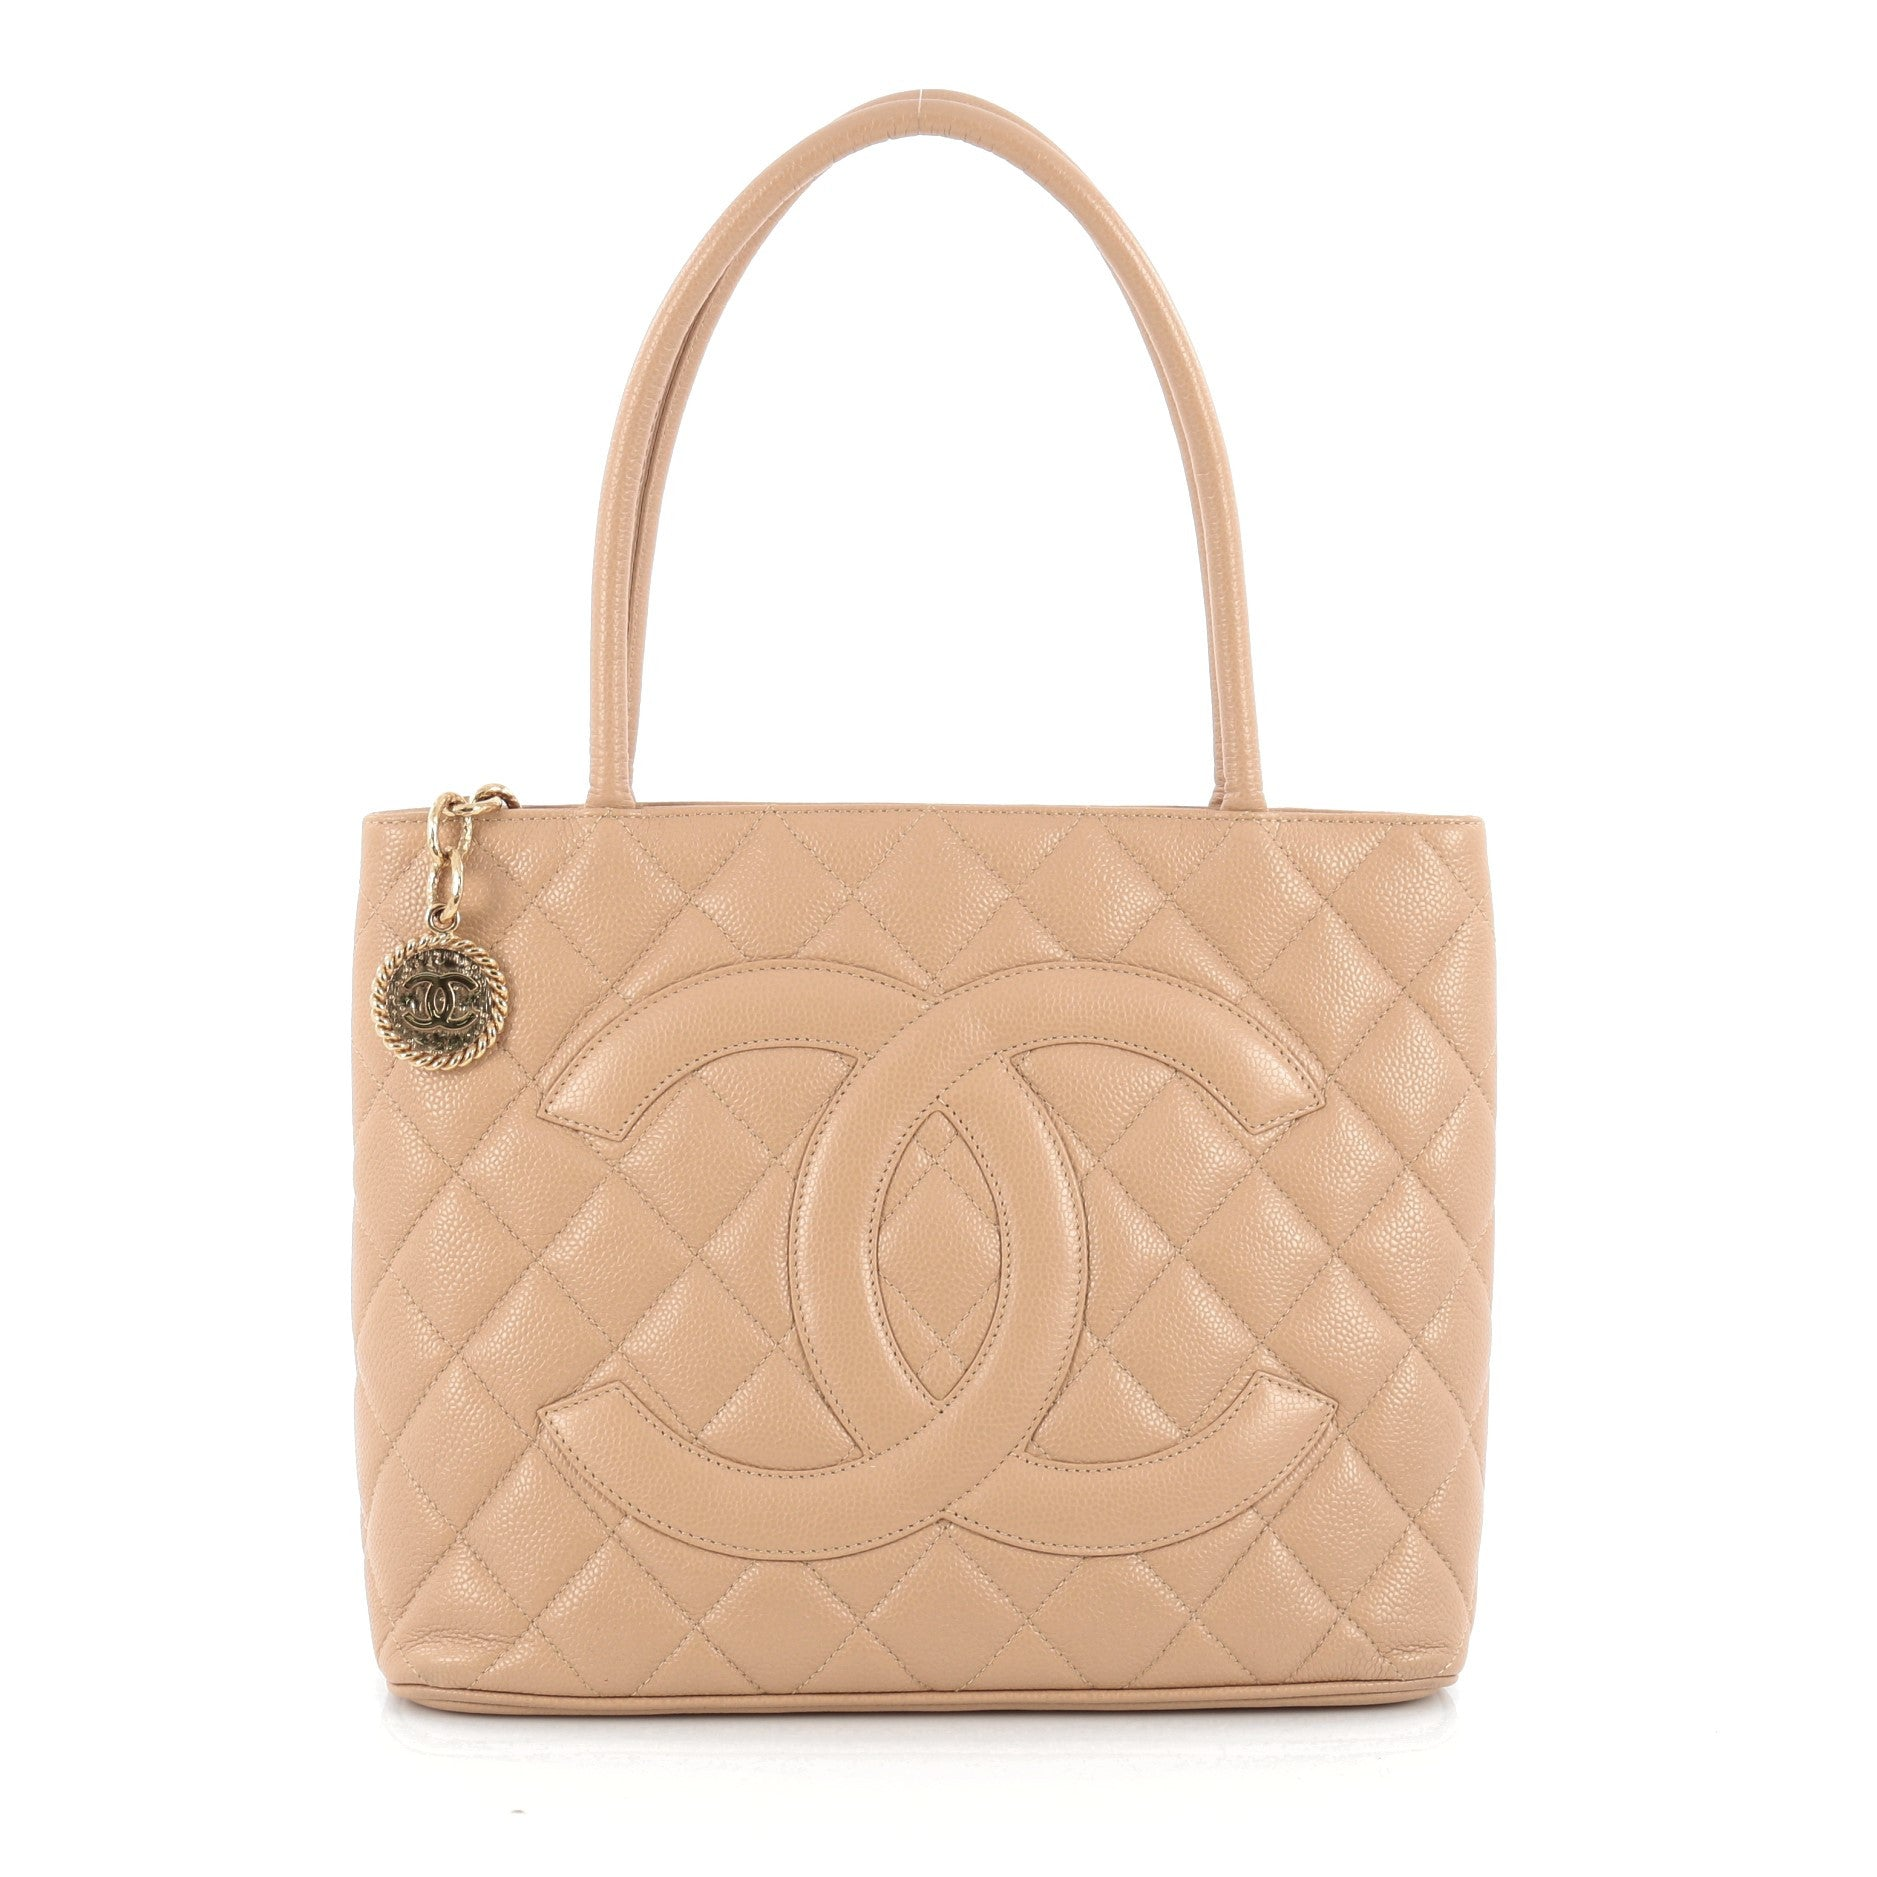 b8756f8d7536 16969-05_Chanel_Medallion_Tote_Quilted_Caviar_2D_0003.jpg?v=1487720160